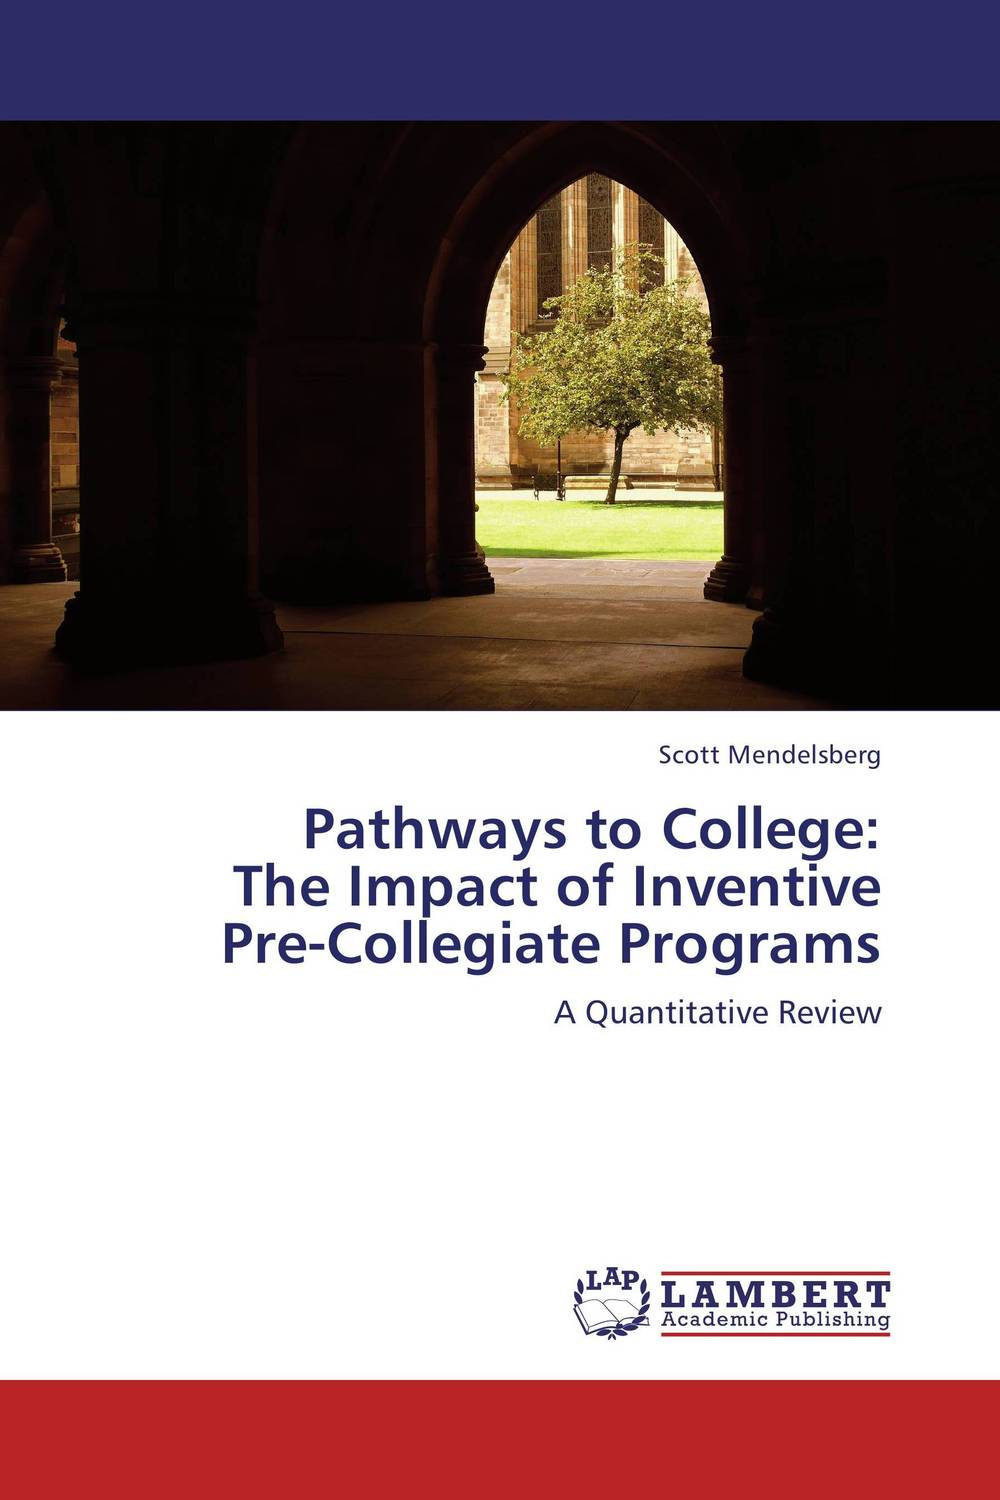 Pathways to College: The Impact of Inventive Pre-Collegiate Programs chic canvas leather british europe student shopping retro school book college laptop everyday travel daily middle size backpack